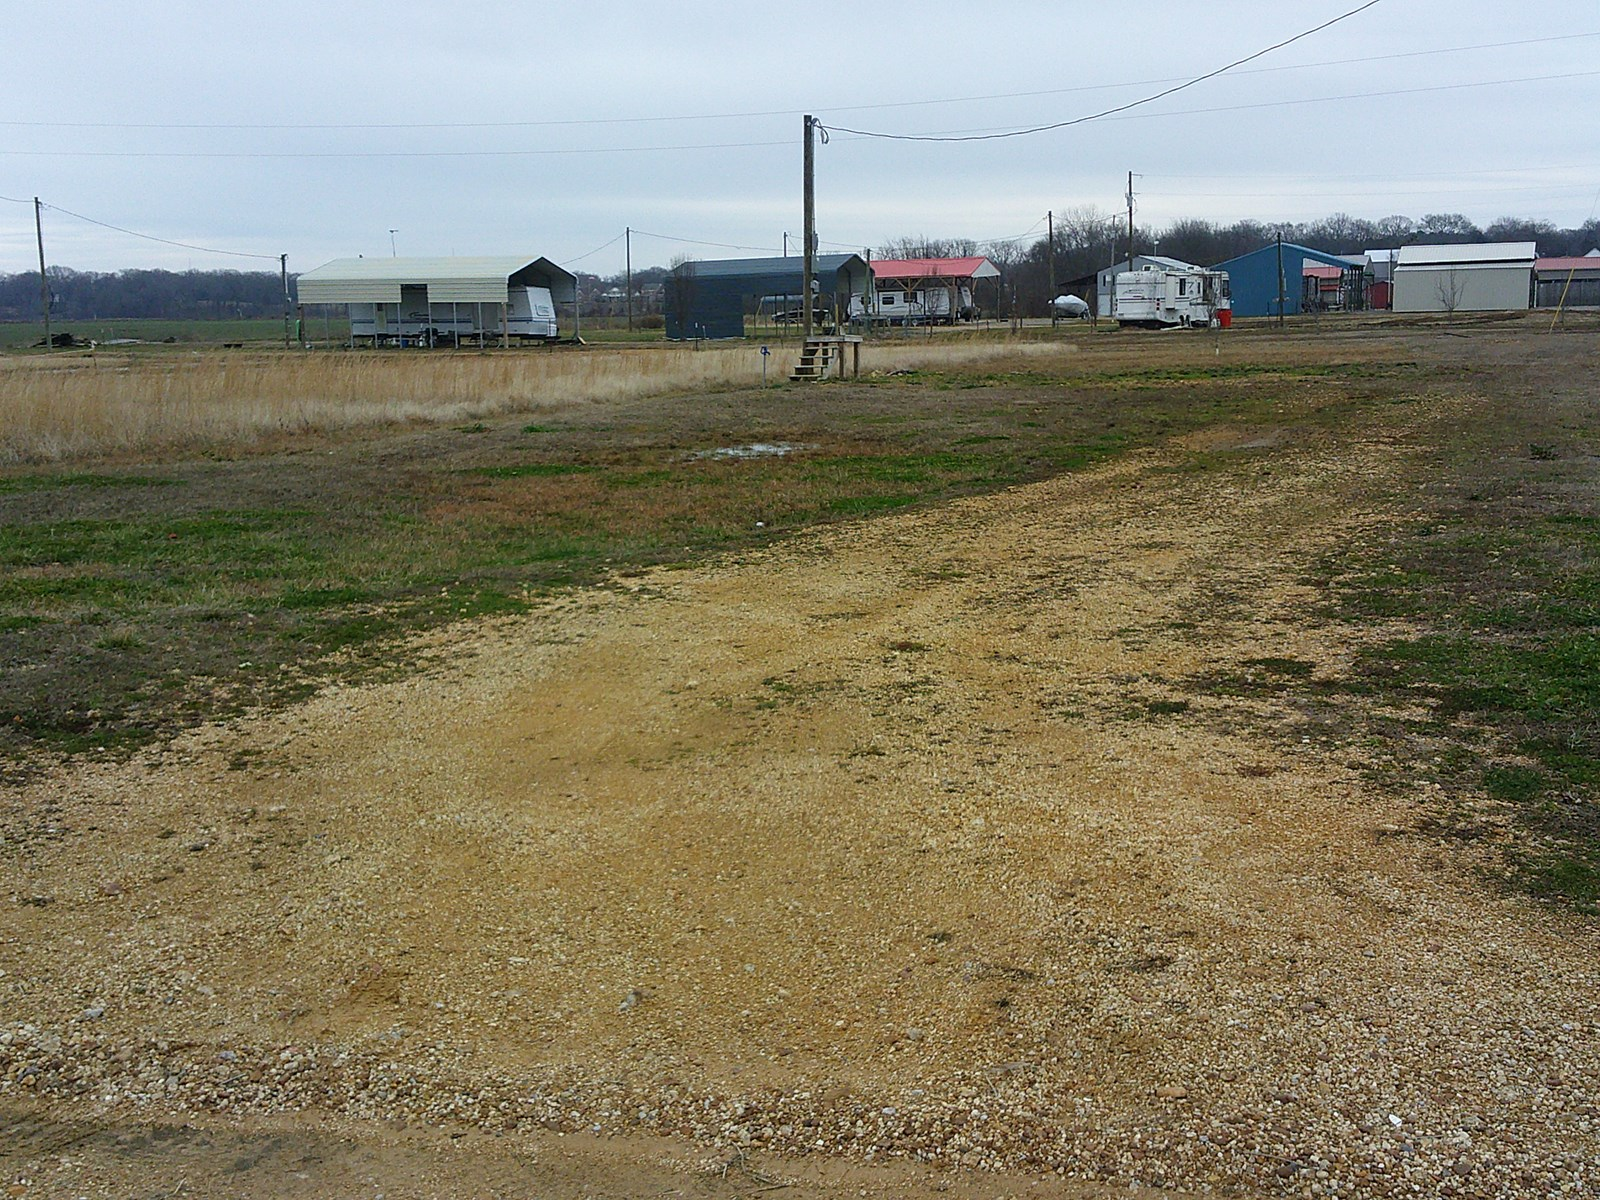 RECREATIONAL LAND FOR SALE WITH UTILITIES, FISHING, CAMPING